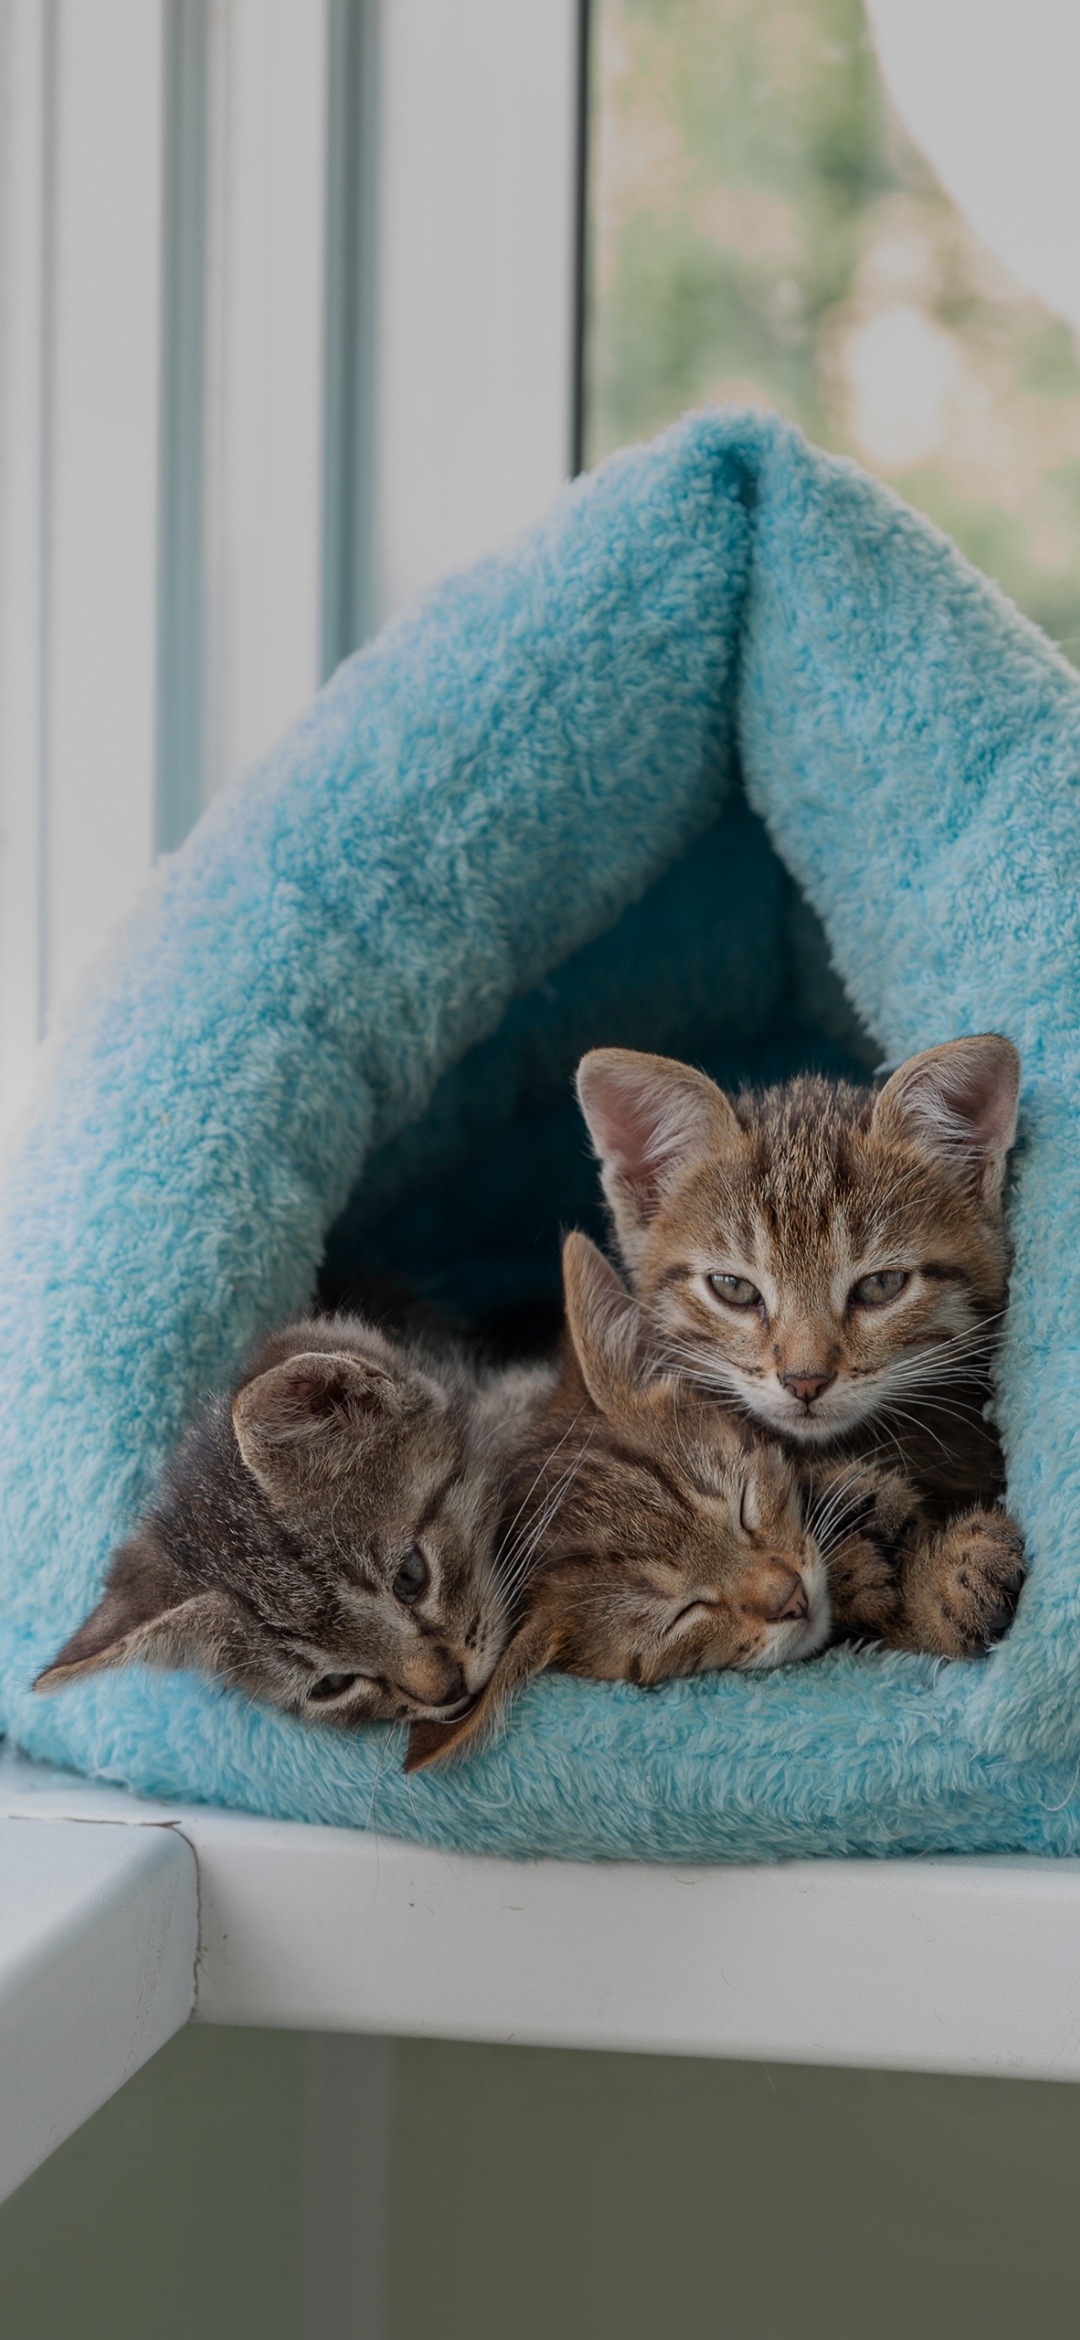 Cats sleeping in the blanket